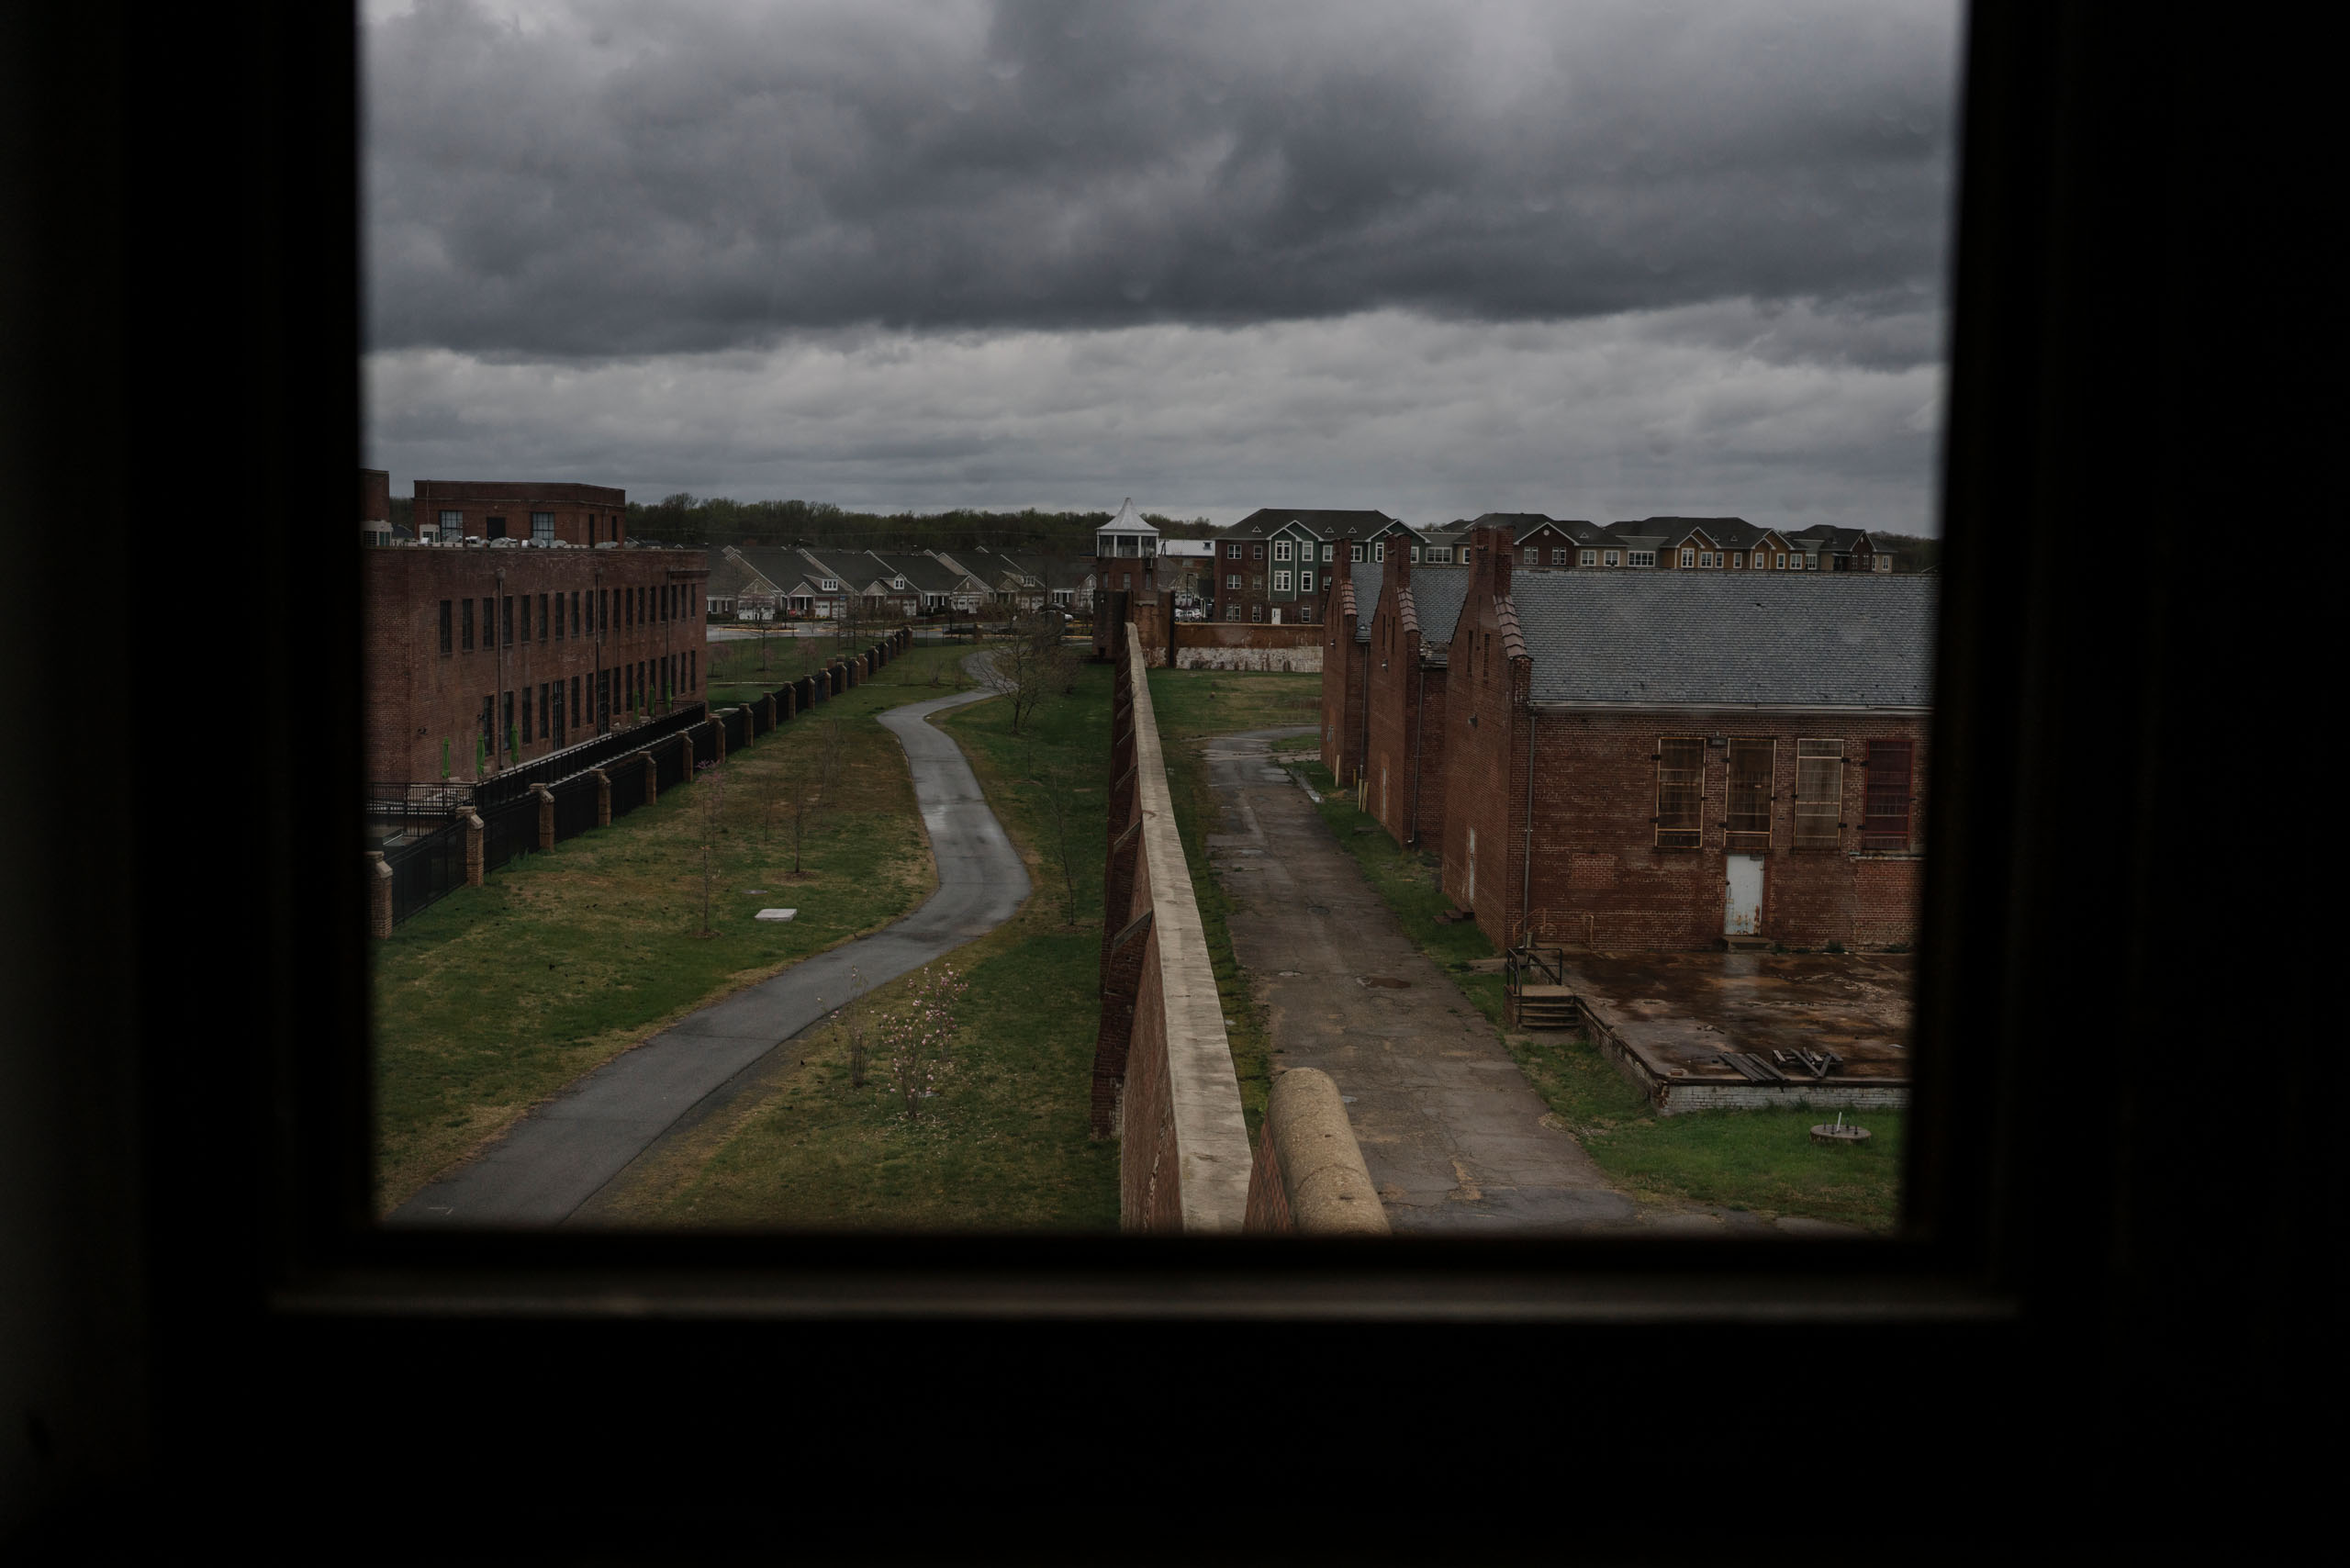 Old prison grounds. Photo by Lexey Swall.